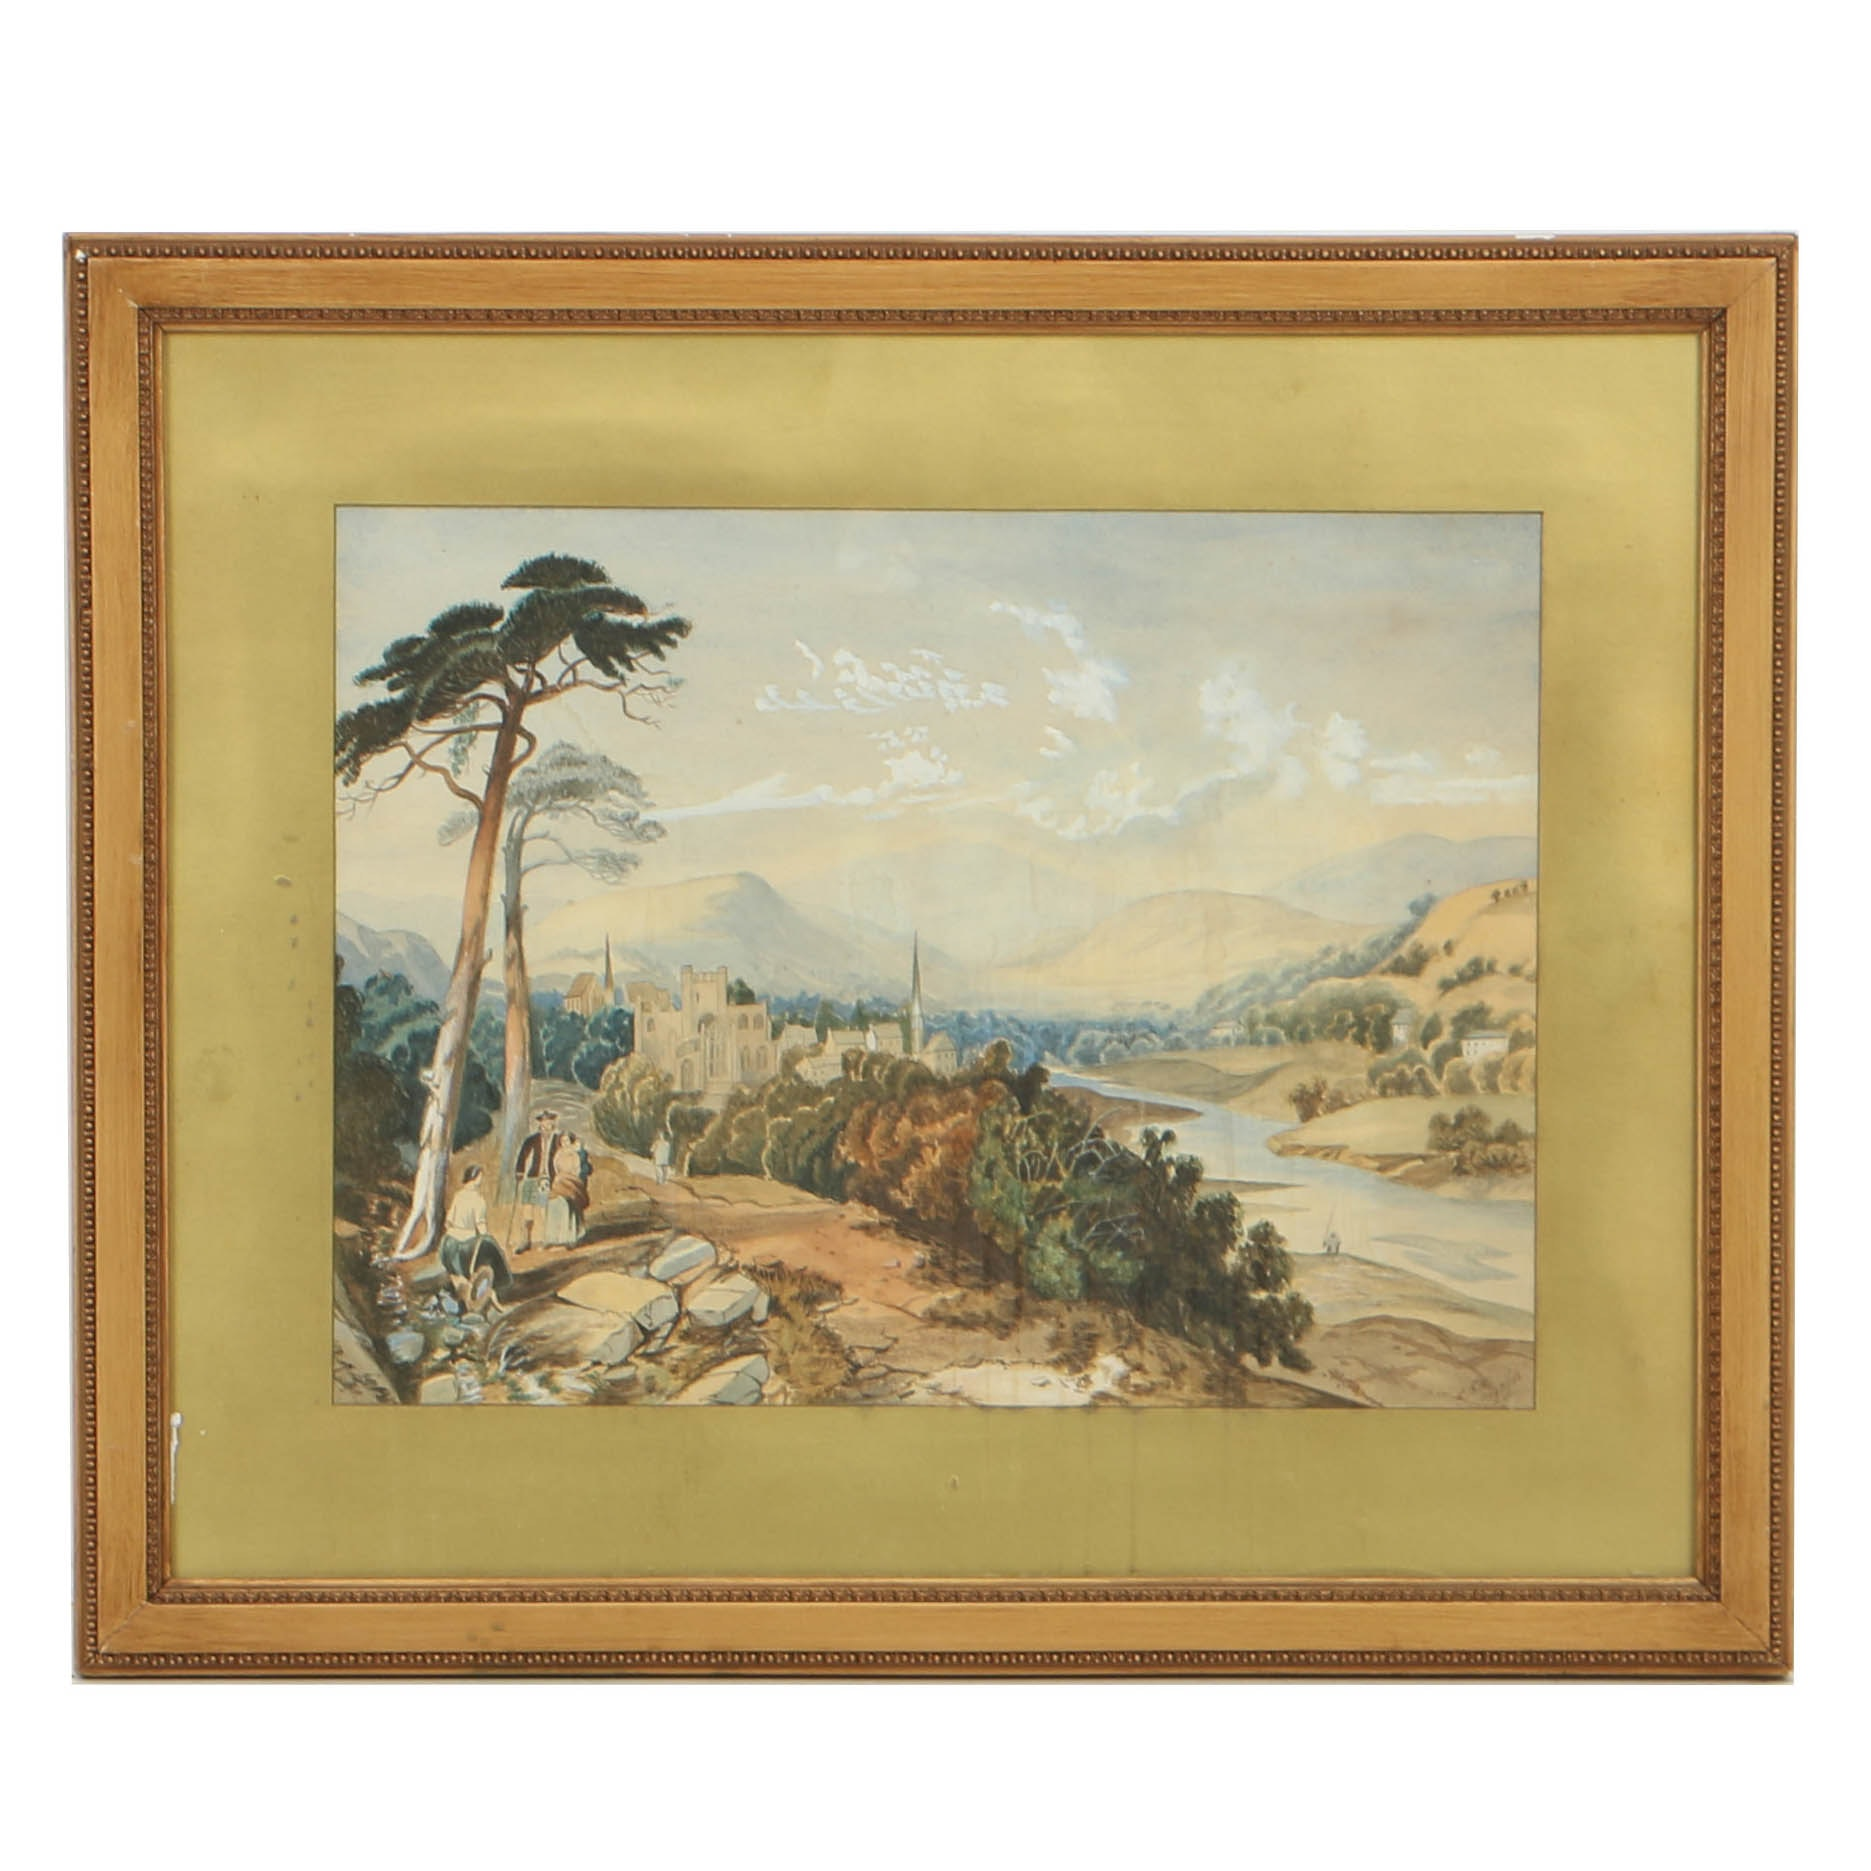 19th Century Watercolor Painting on Paper of European Landscape